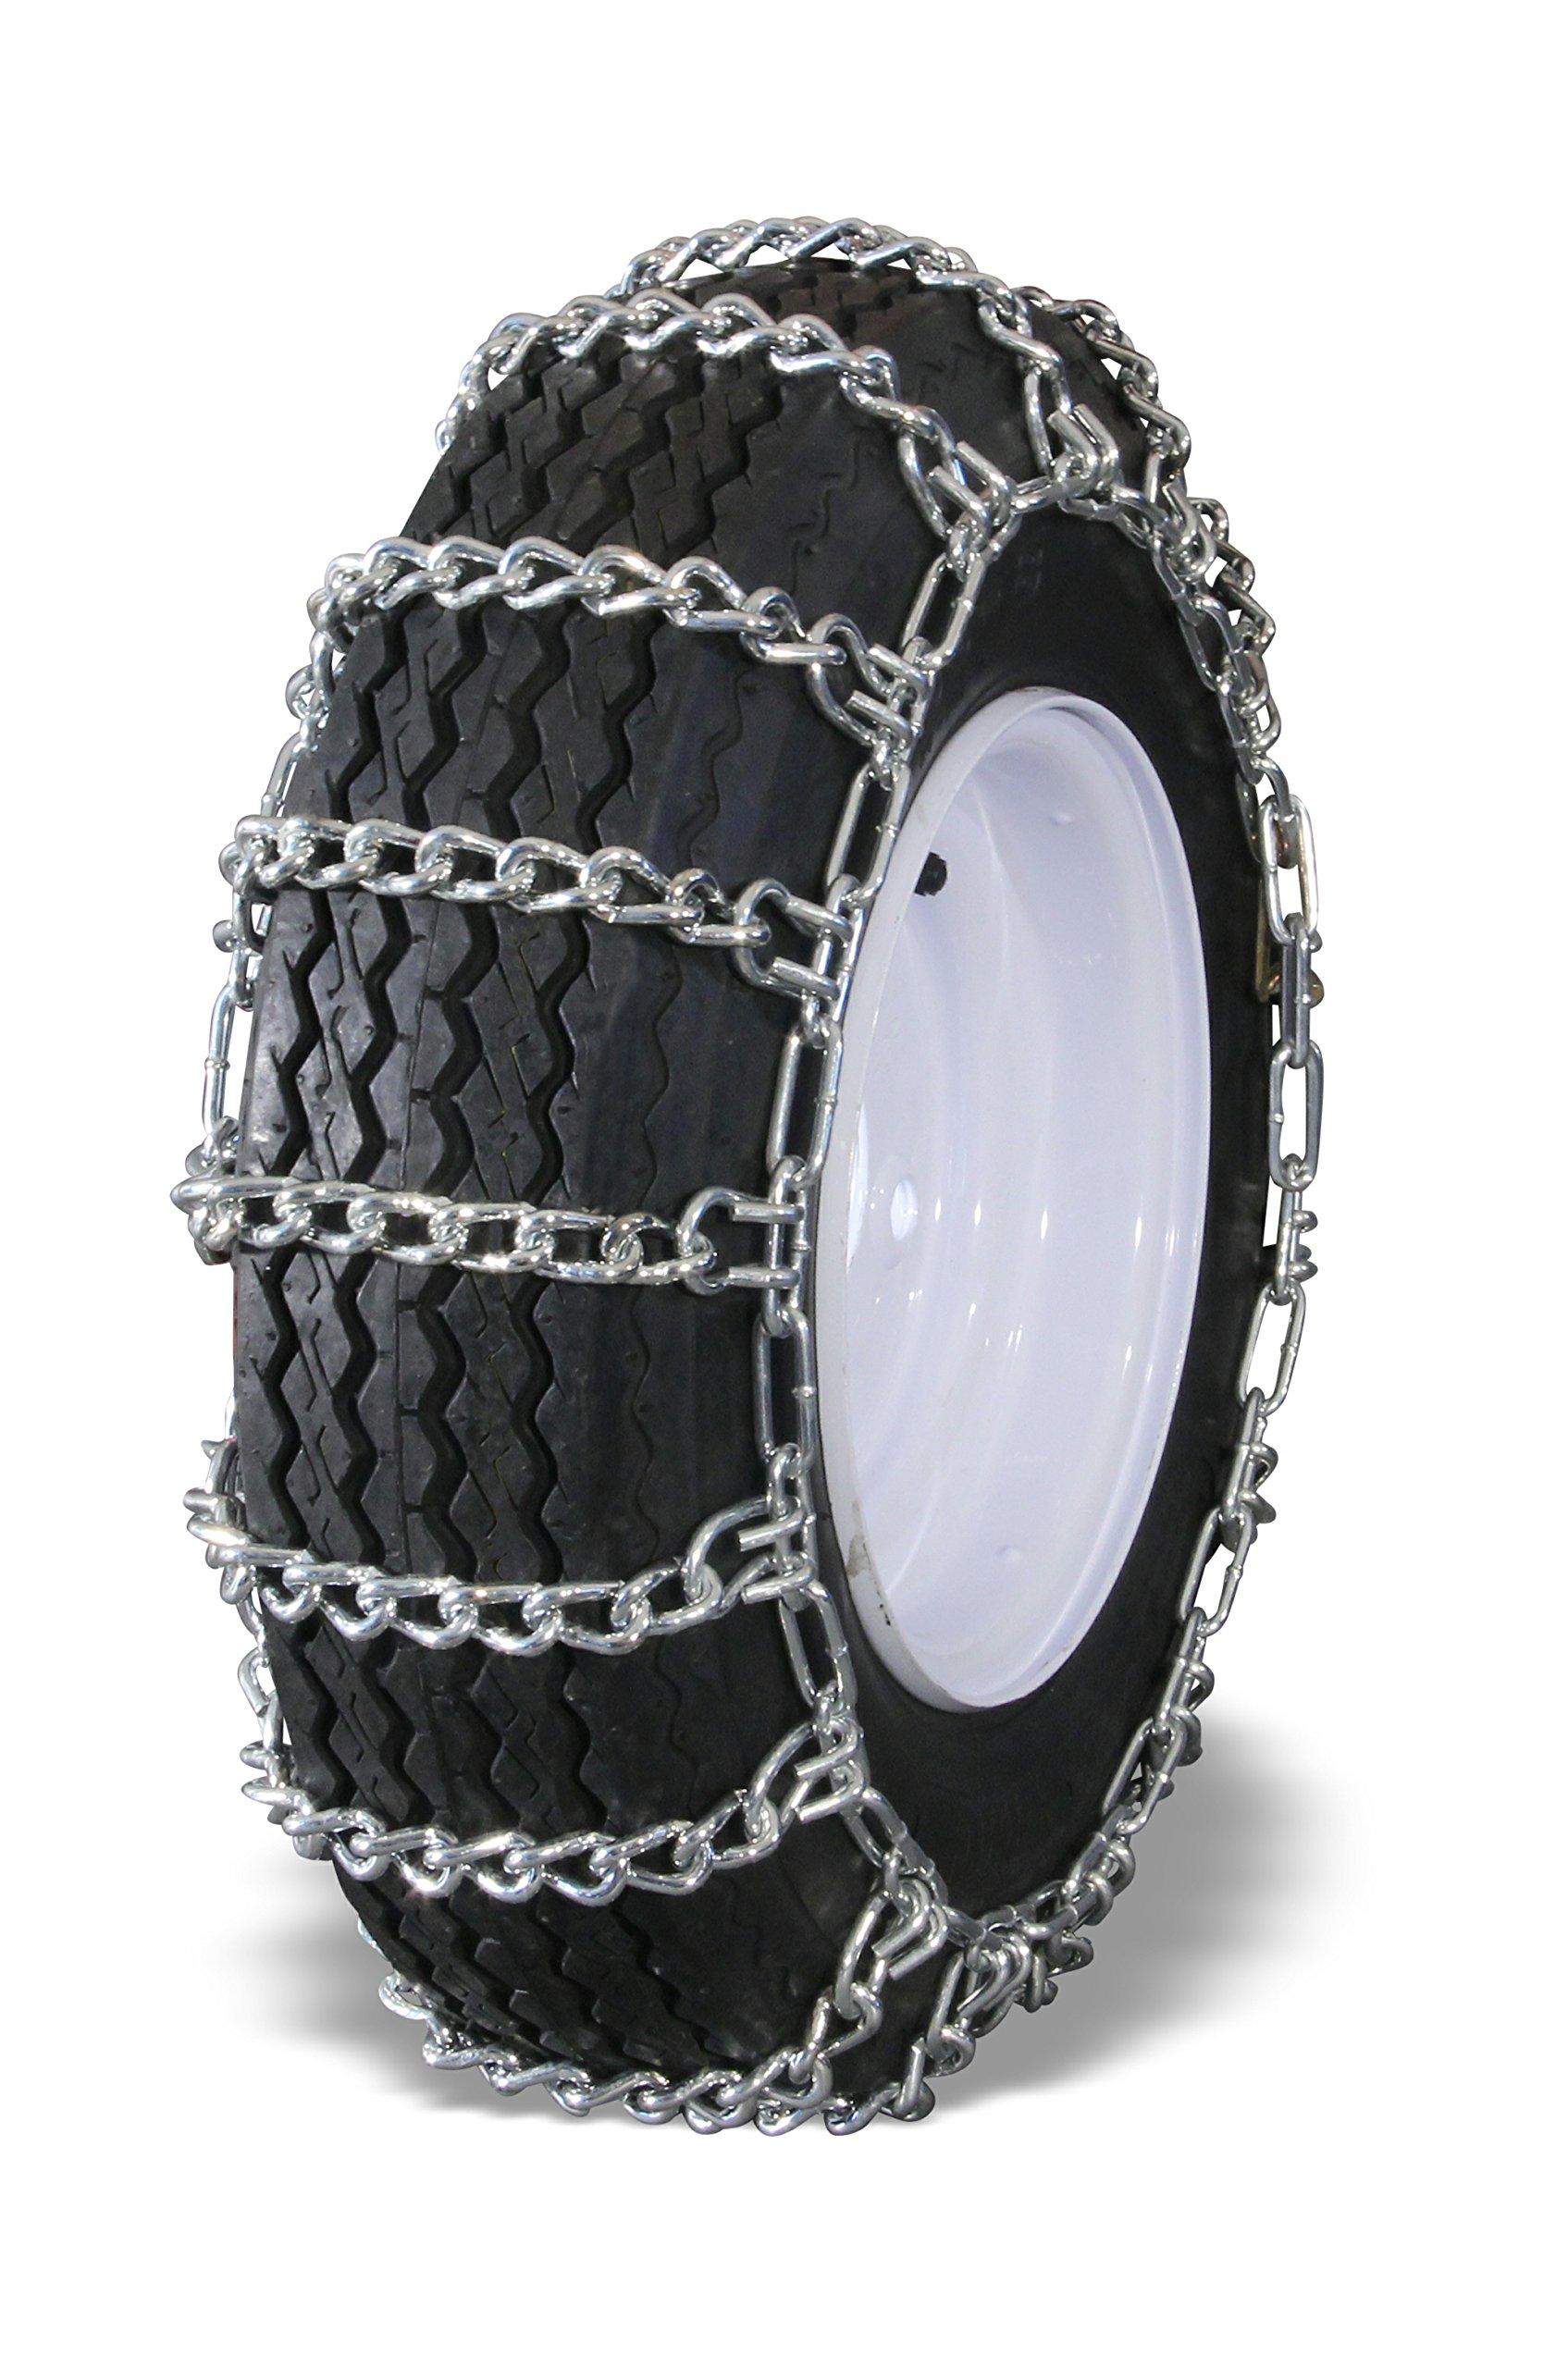 Peerless MTL-309 Garden Tractor 2 link Ladder Style Tire Chains 13x5.00-6